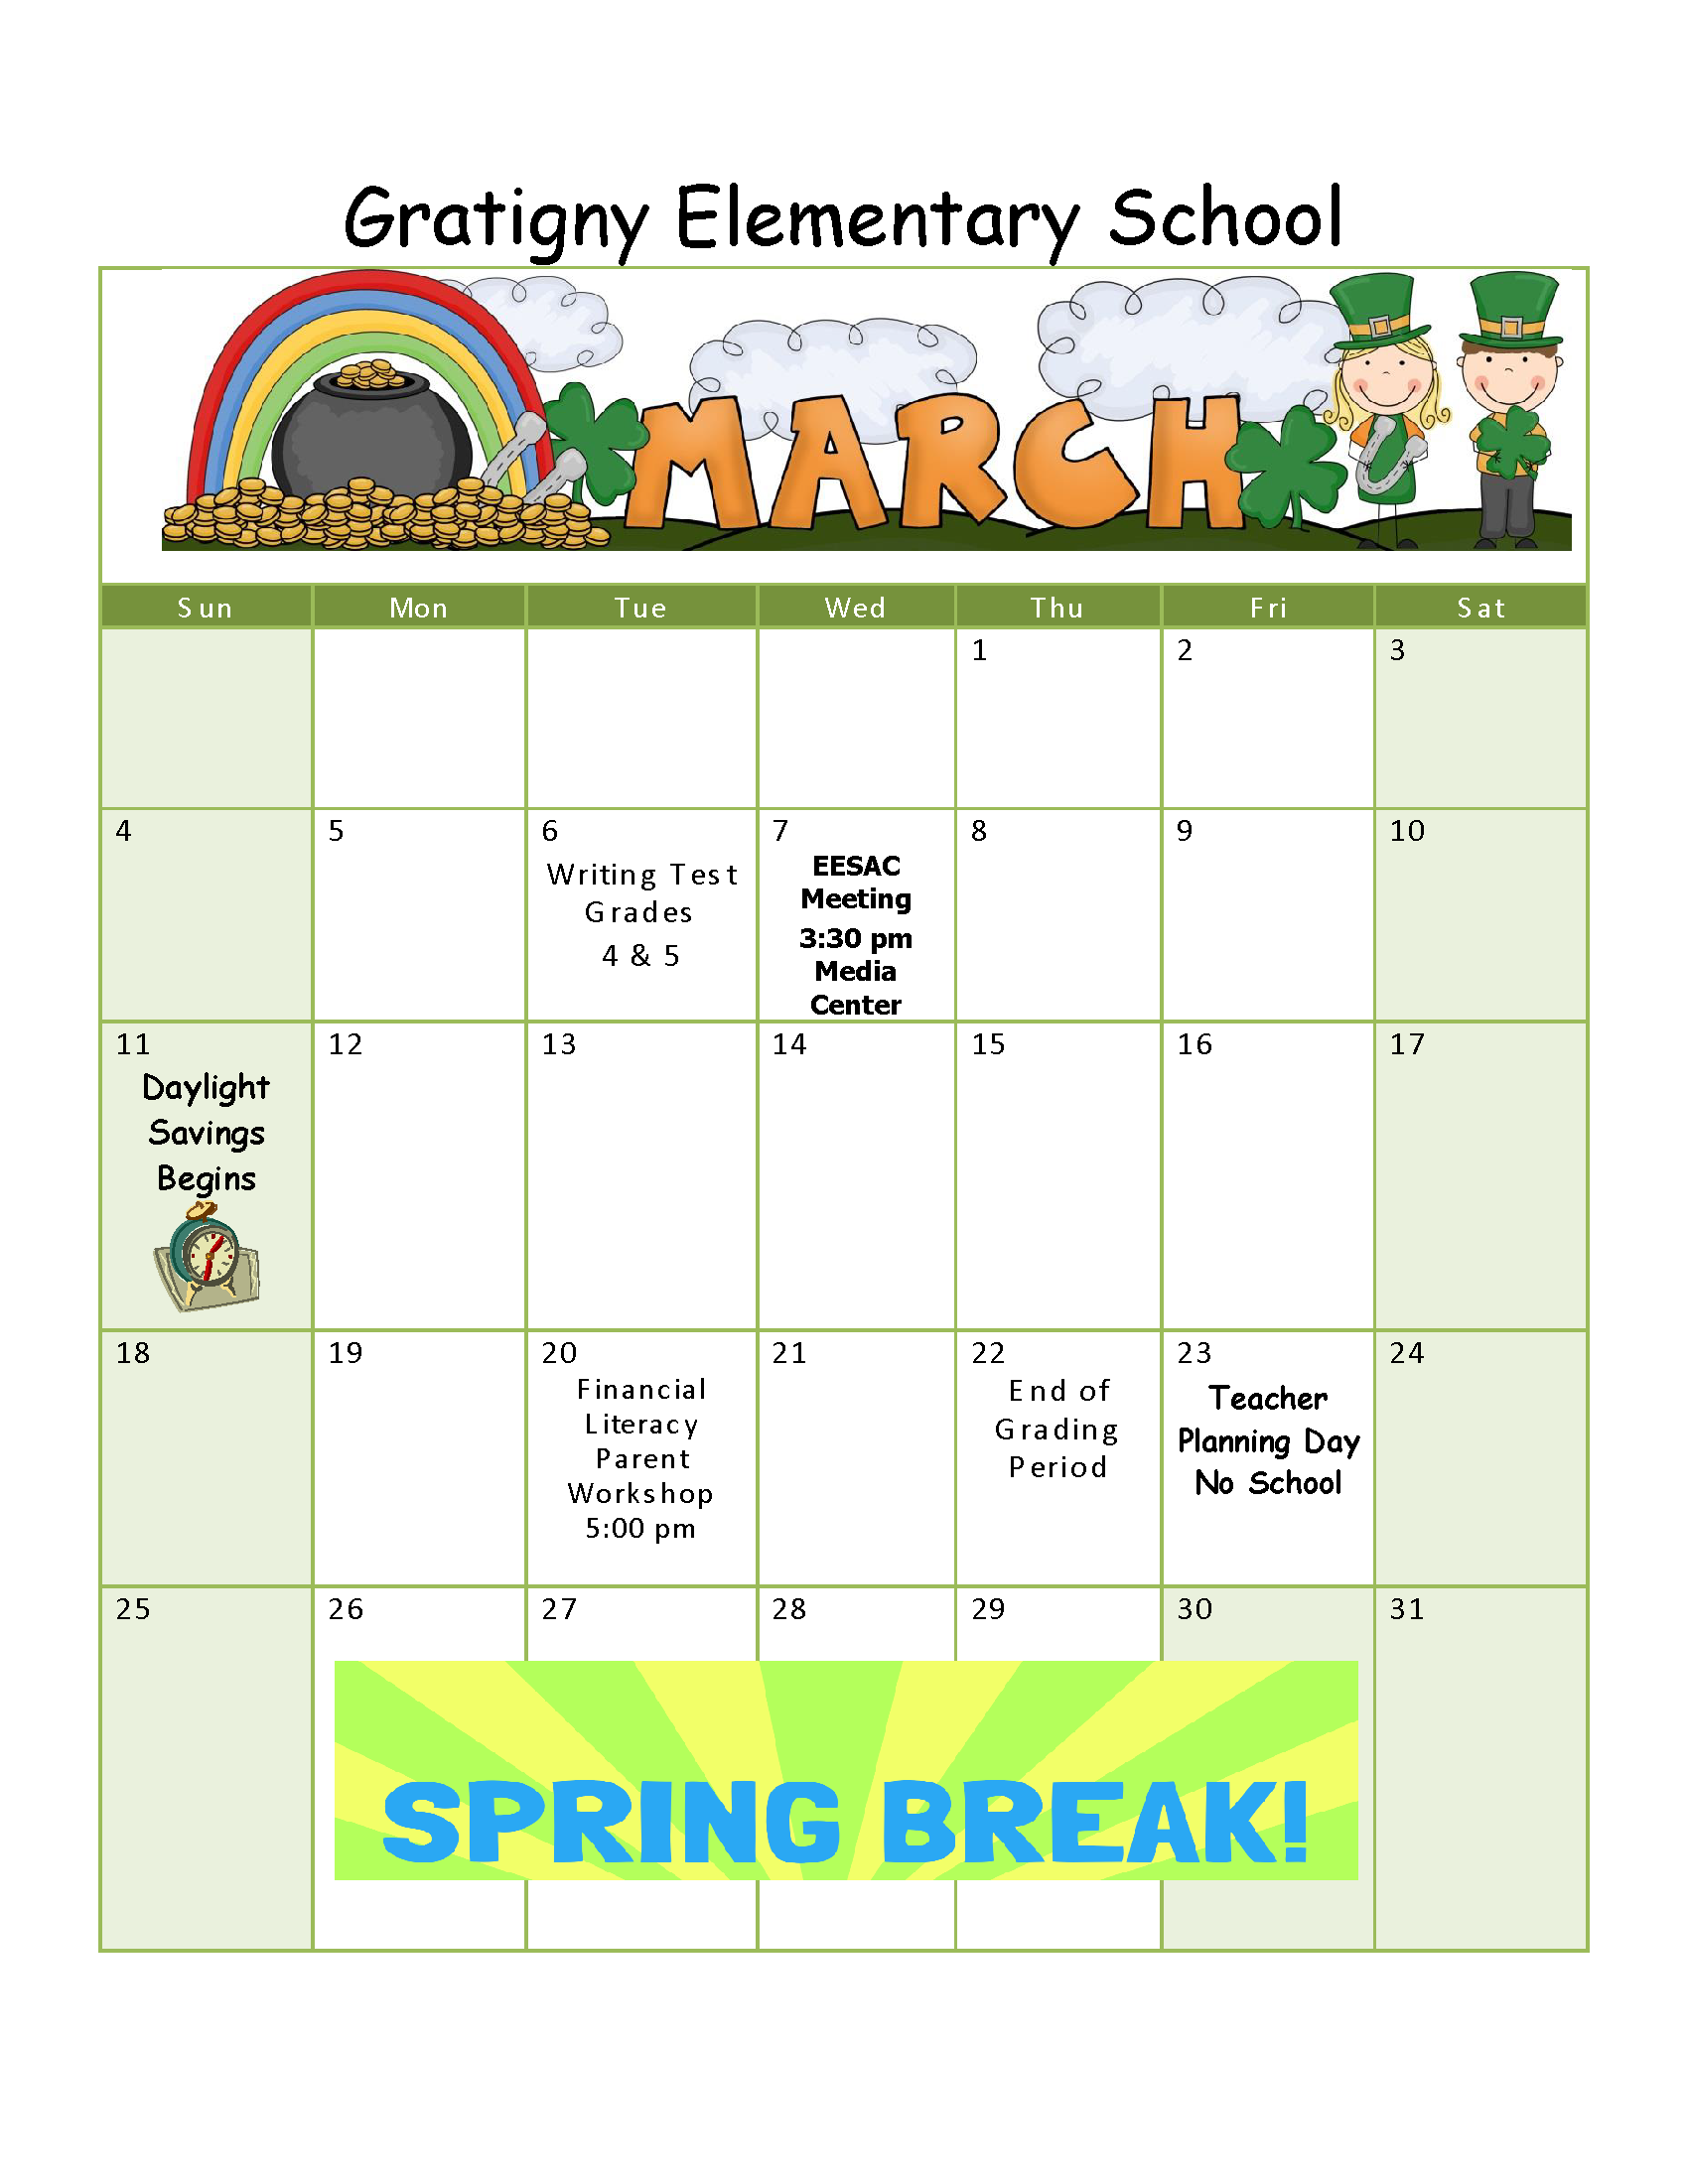 Calendar Ideas For Elementary : Monthly activities gratigny elementary